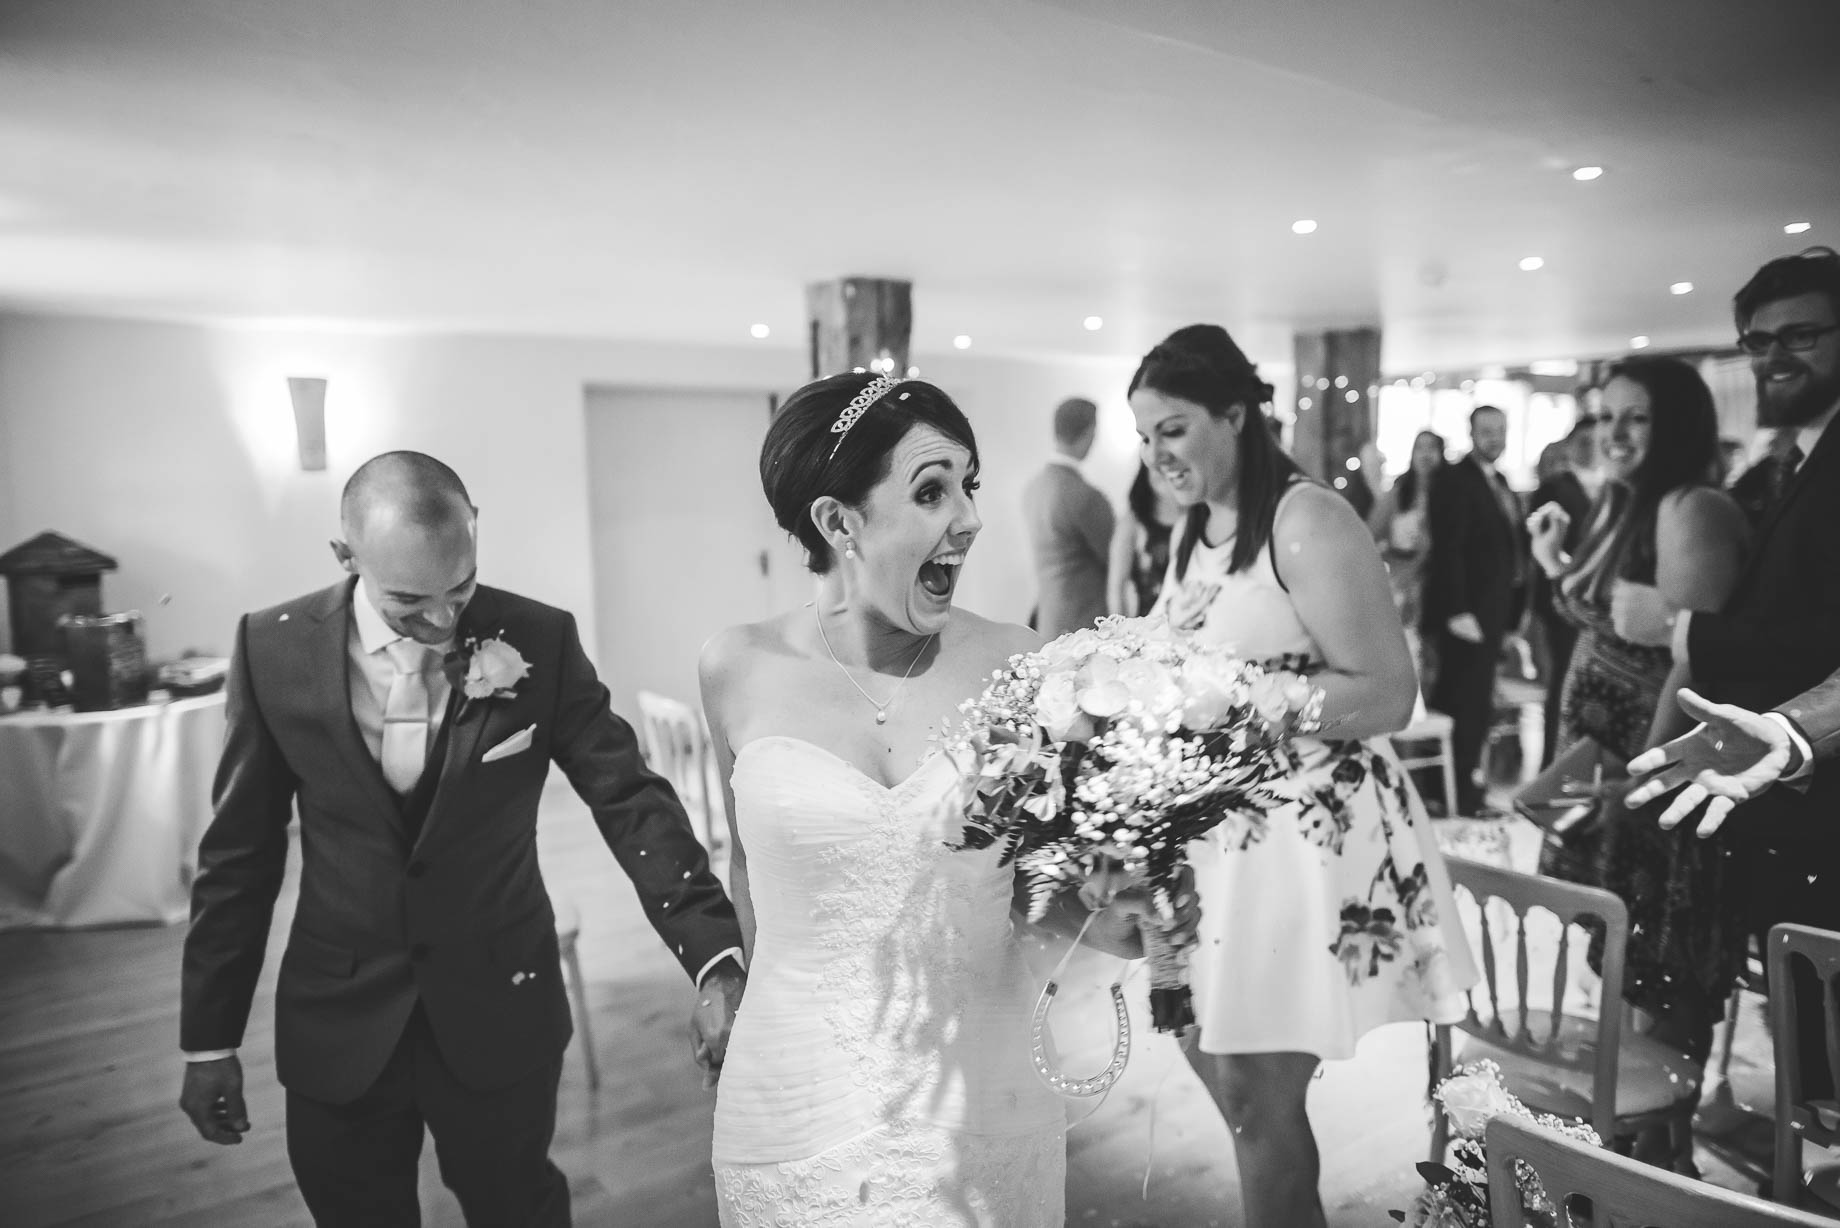 Bury Court Barn wedding photography - Guy Collier Photography - Karen and John (64 of 166)